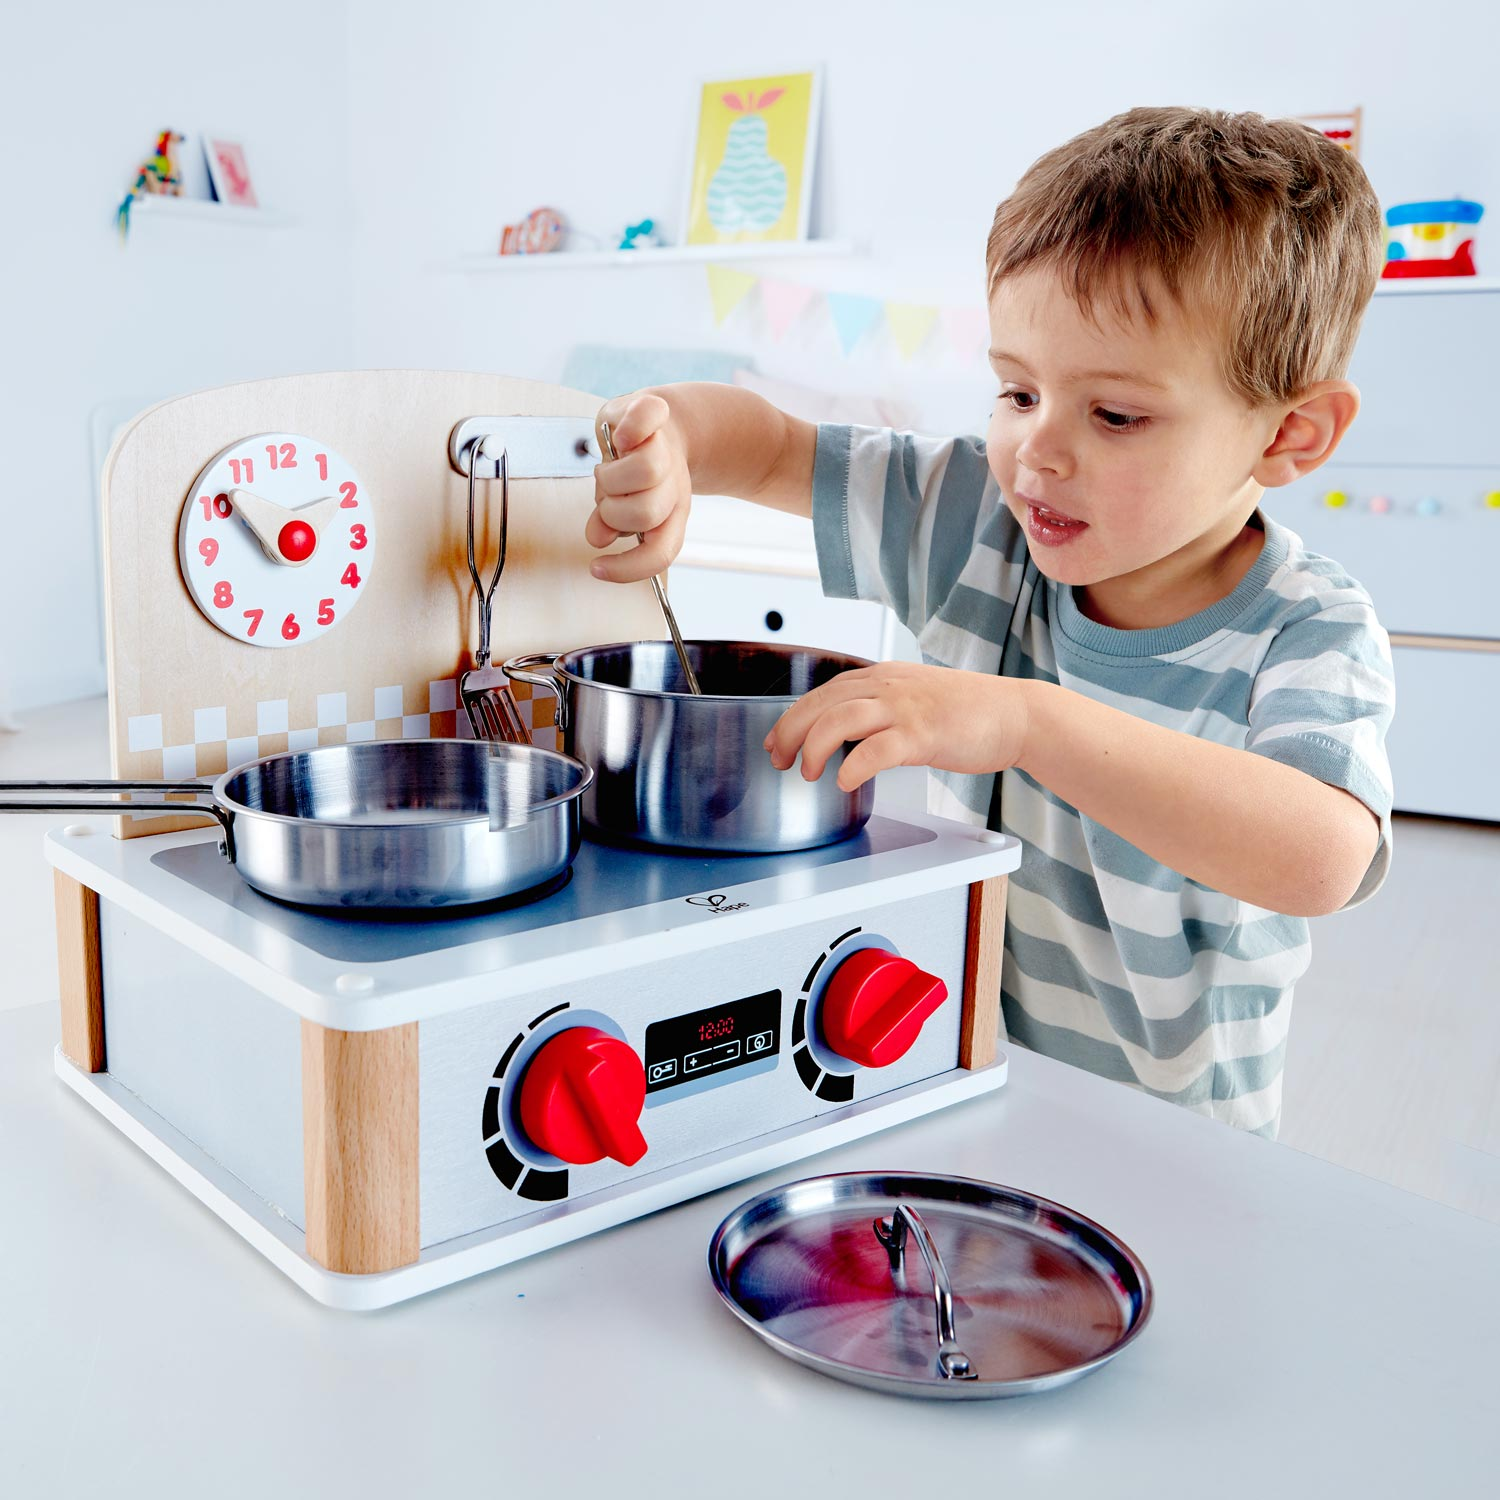 2 In 1 Kitchen Grill Set E3151 Hape Toys